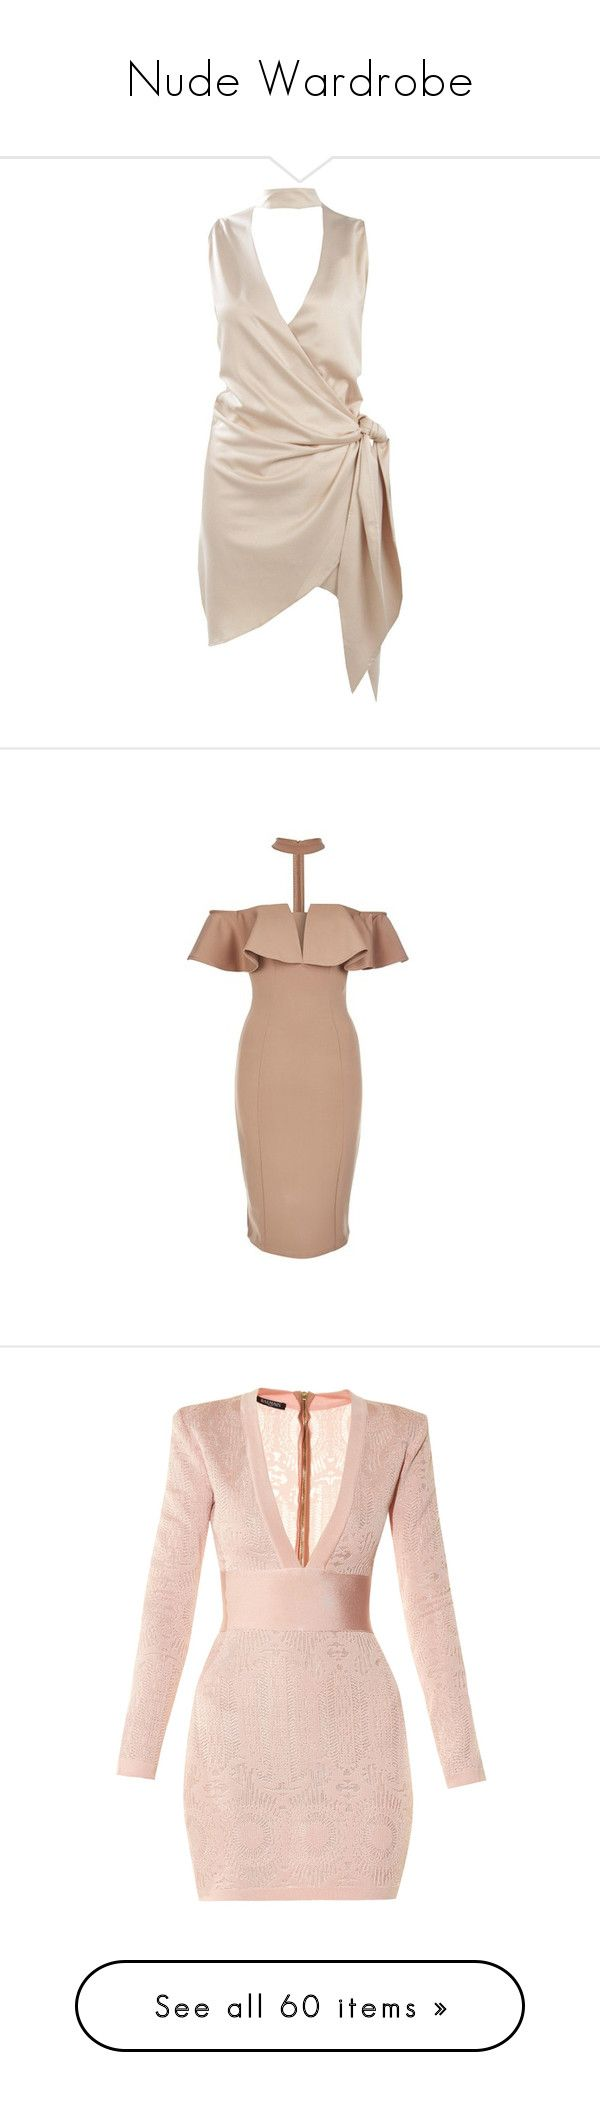 """Nude Wardrobe"" by alyssawui ❤ liked on Polyvore featuring dresses, bodycon party dresses, pink party dress, pink bodycon dress, satin wrap dress, bodycon dress, camel, body con dress, beige midi dress and plunge bodycon dress"